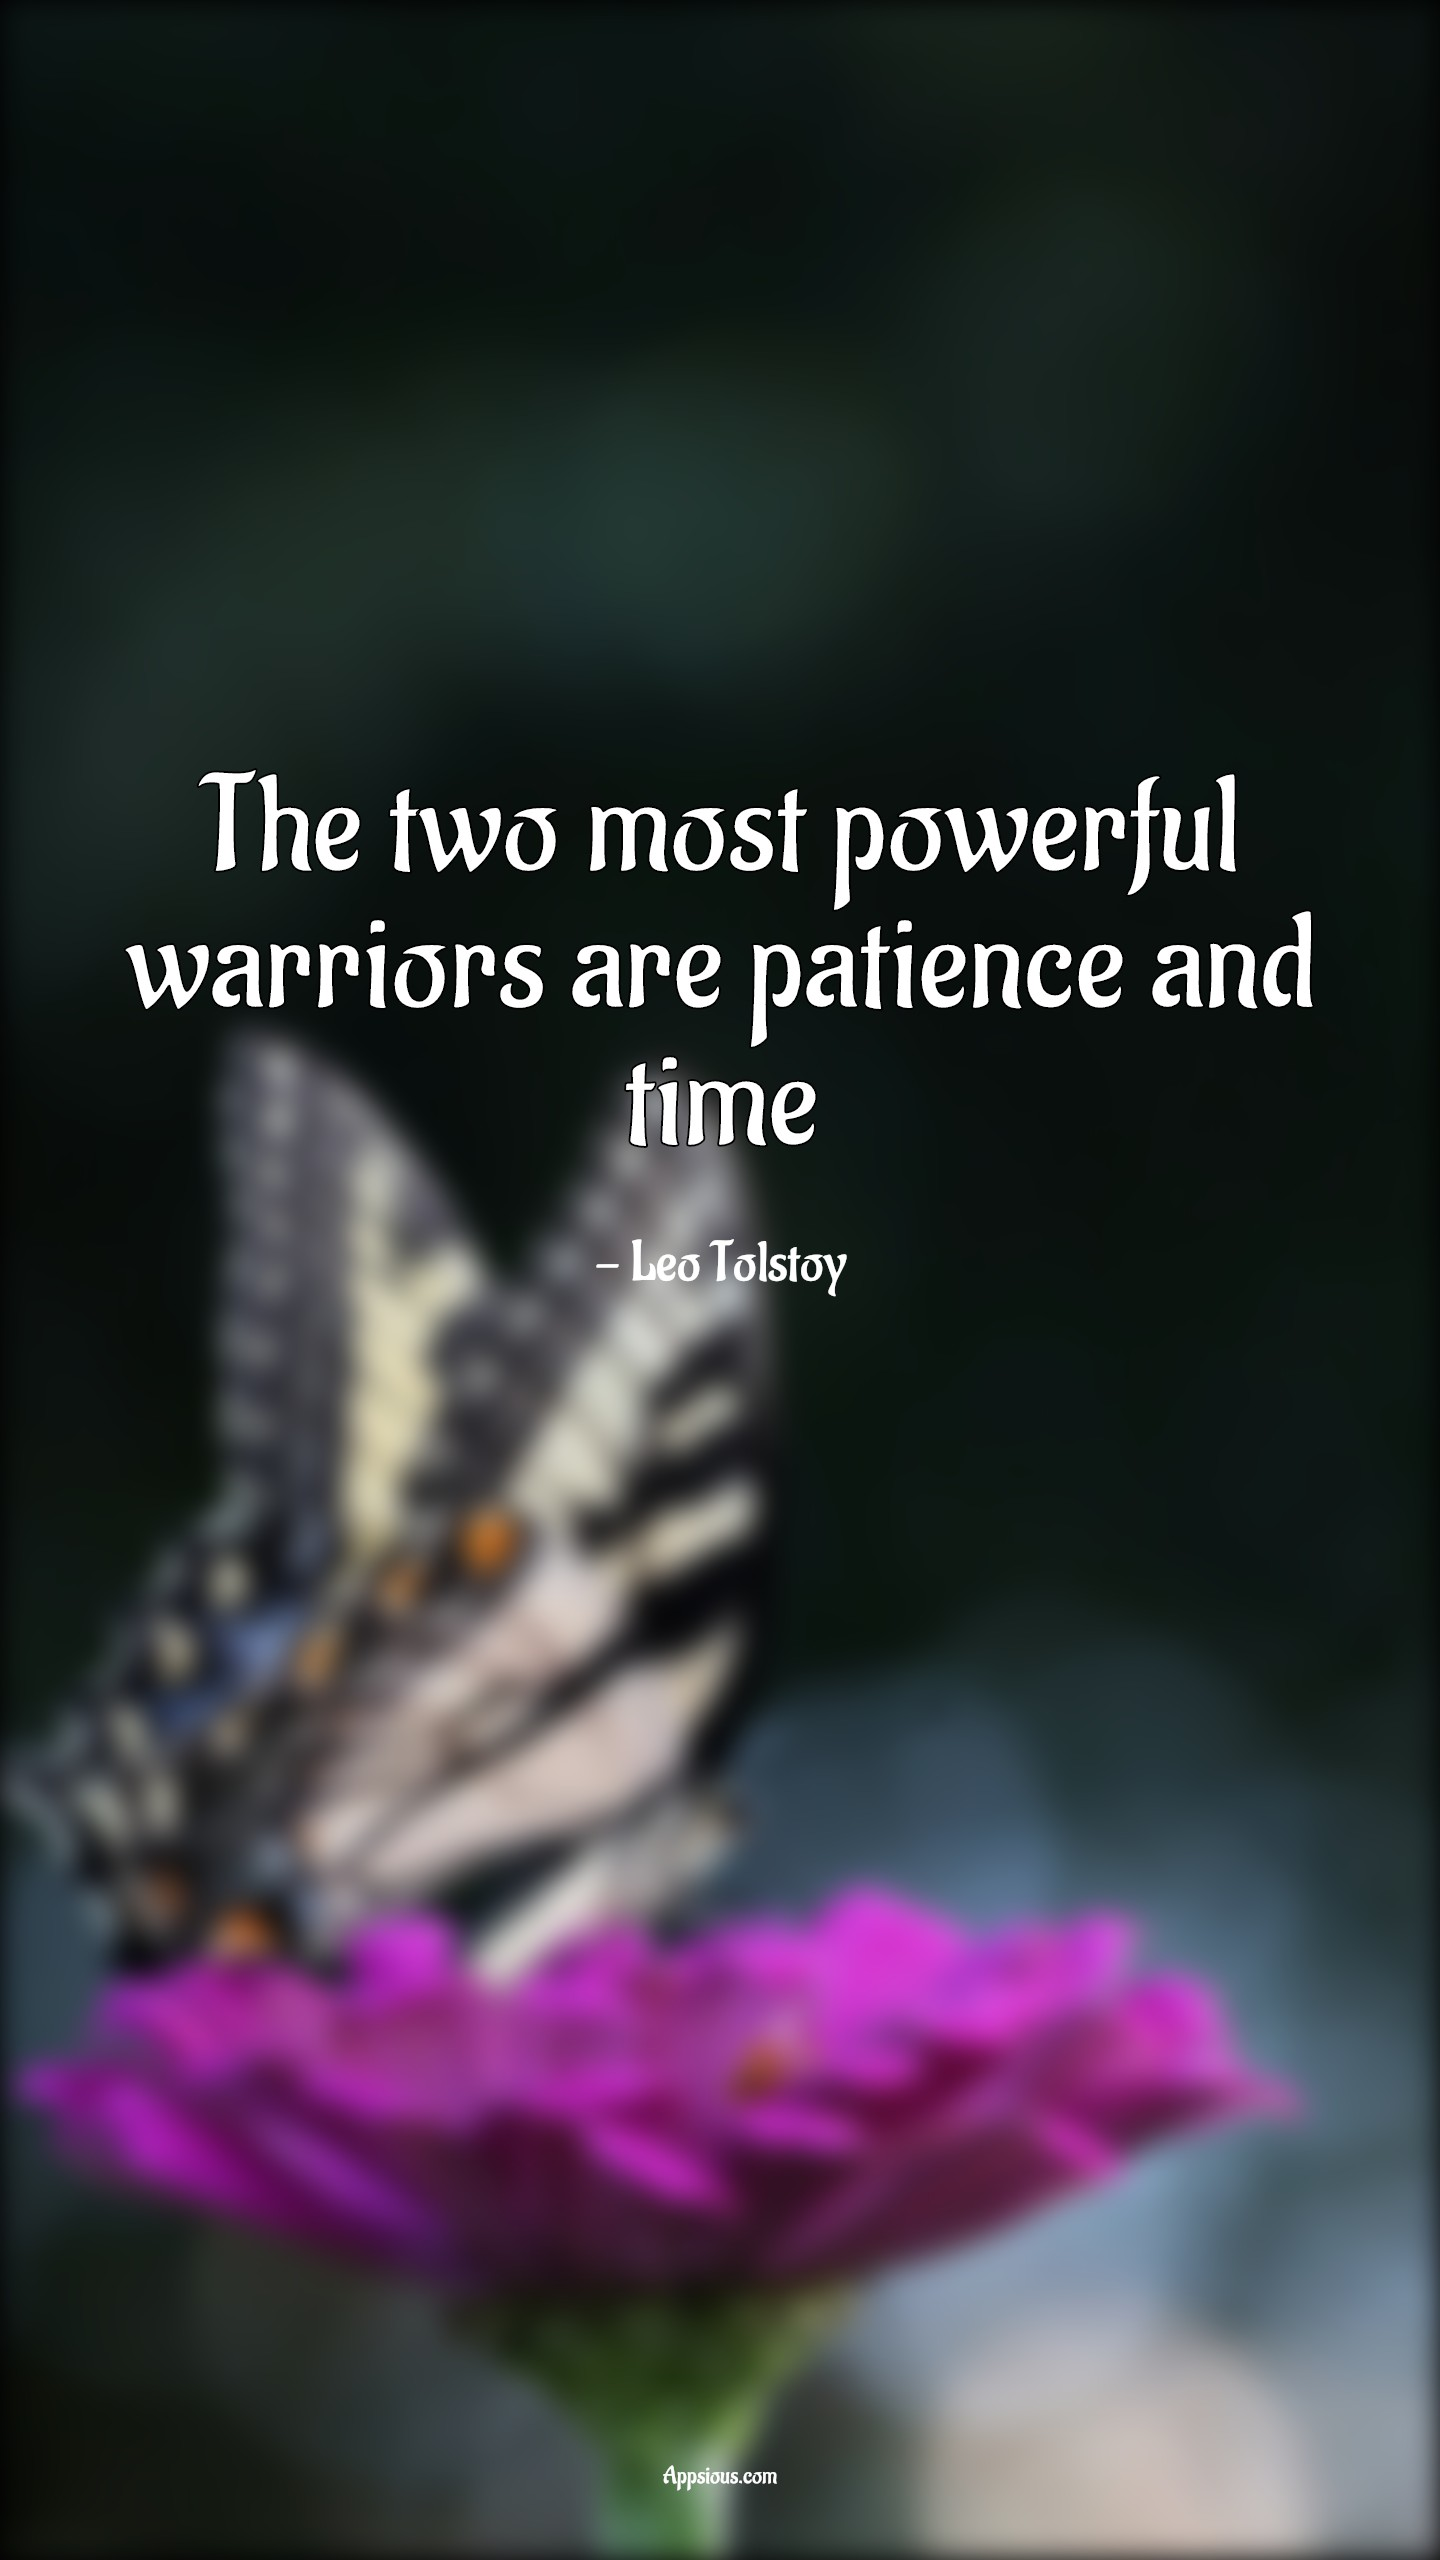 The two most powerful warriors are patience and time